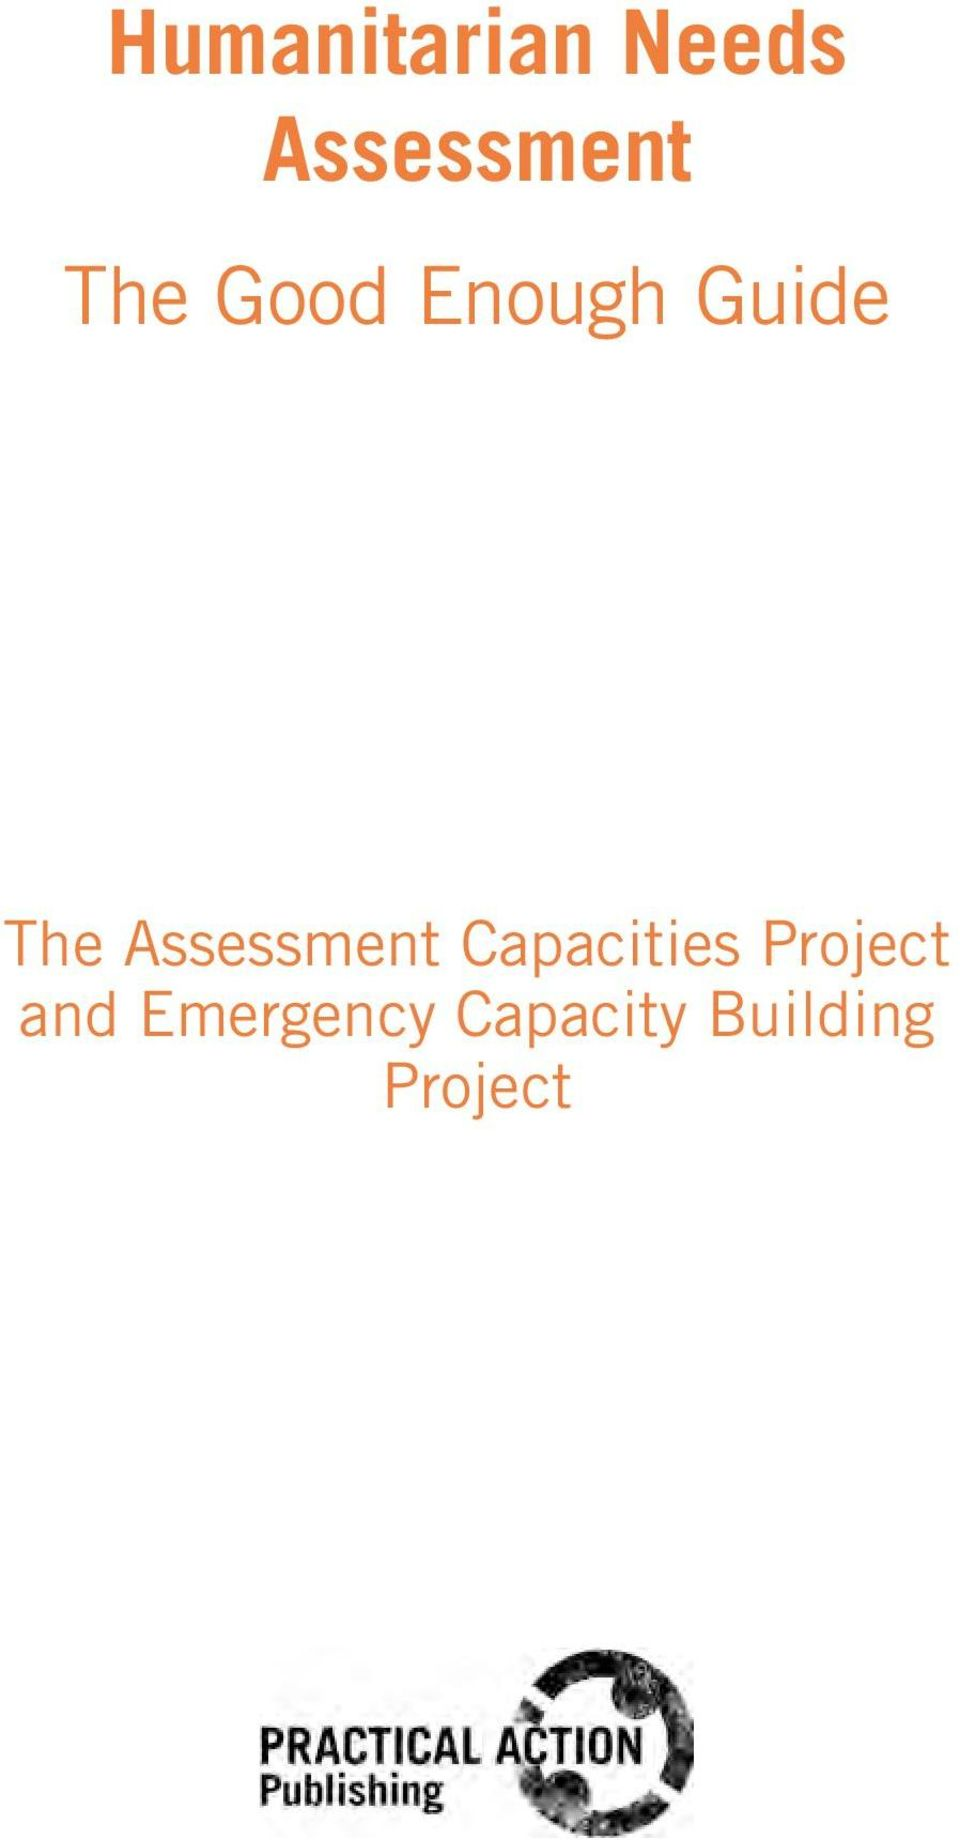 Assessment Capacities Project